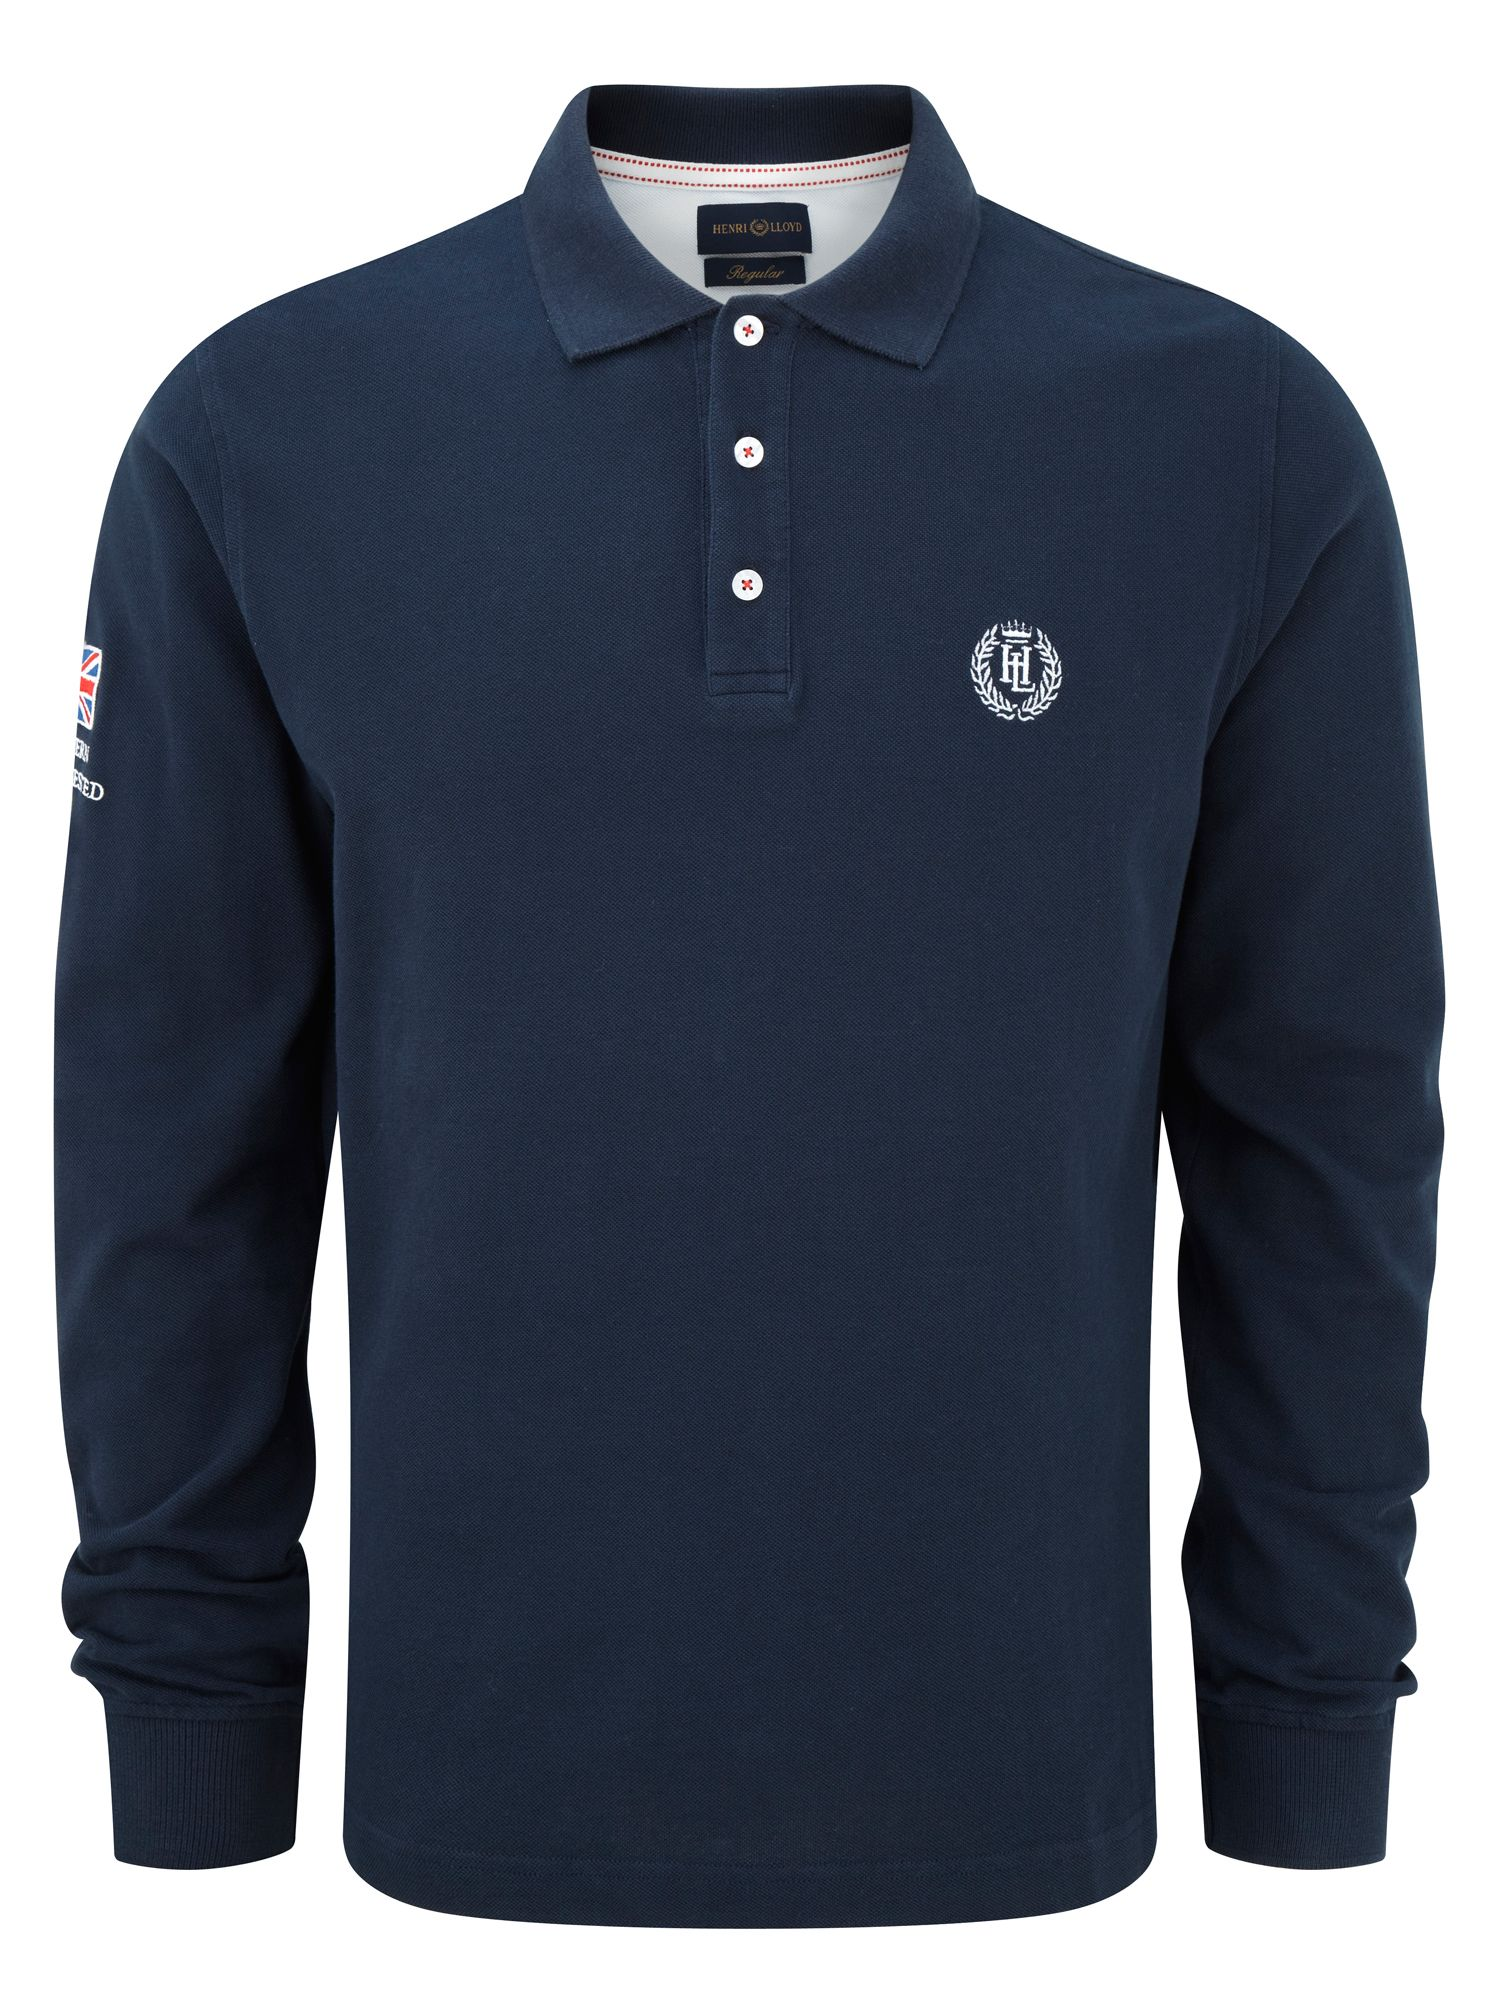 David regular long sleeve polo